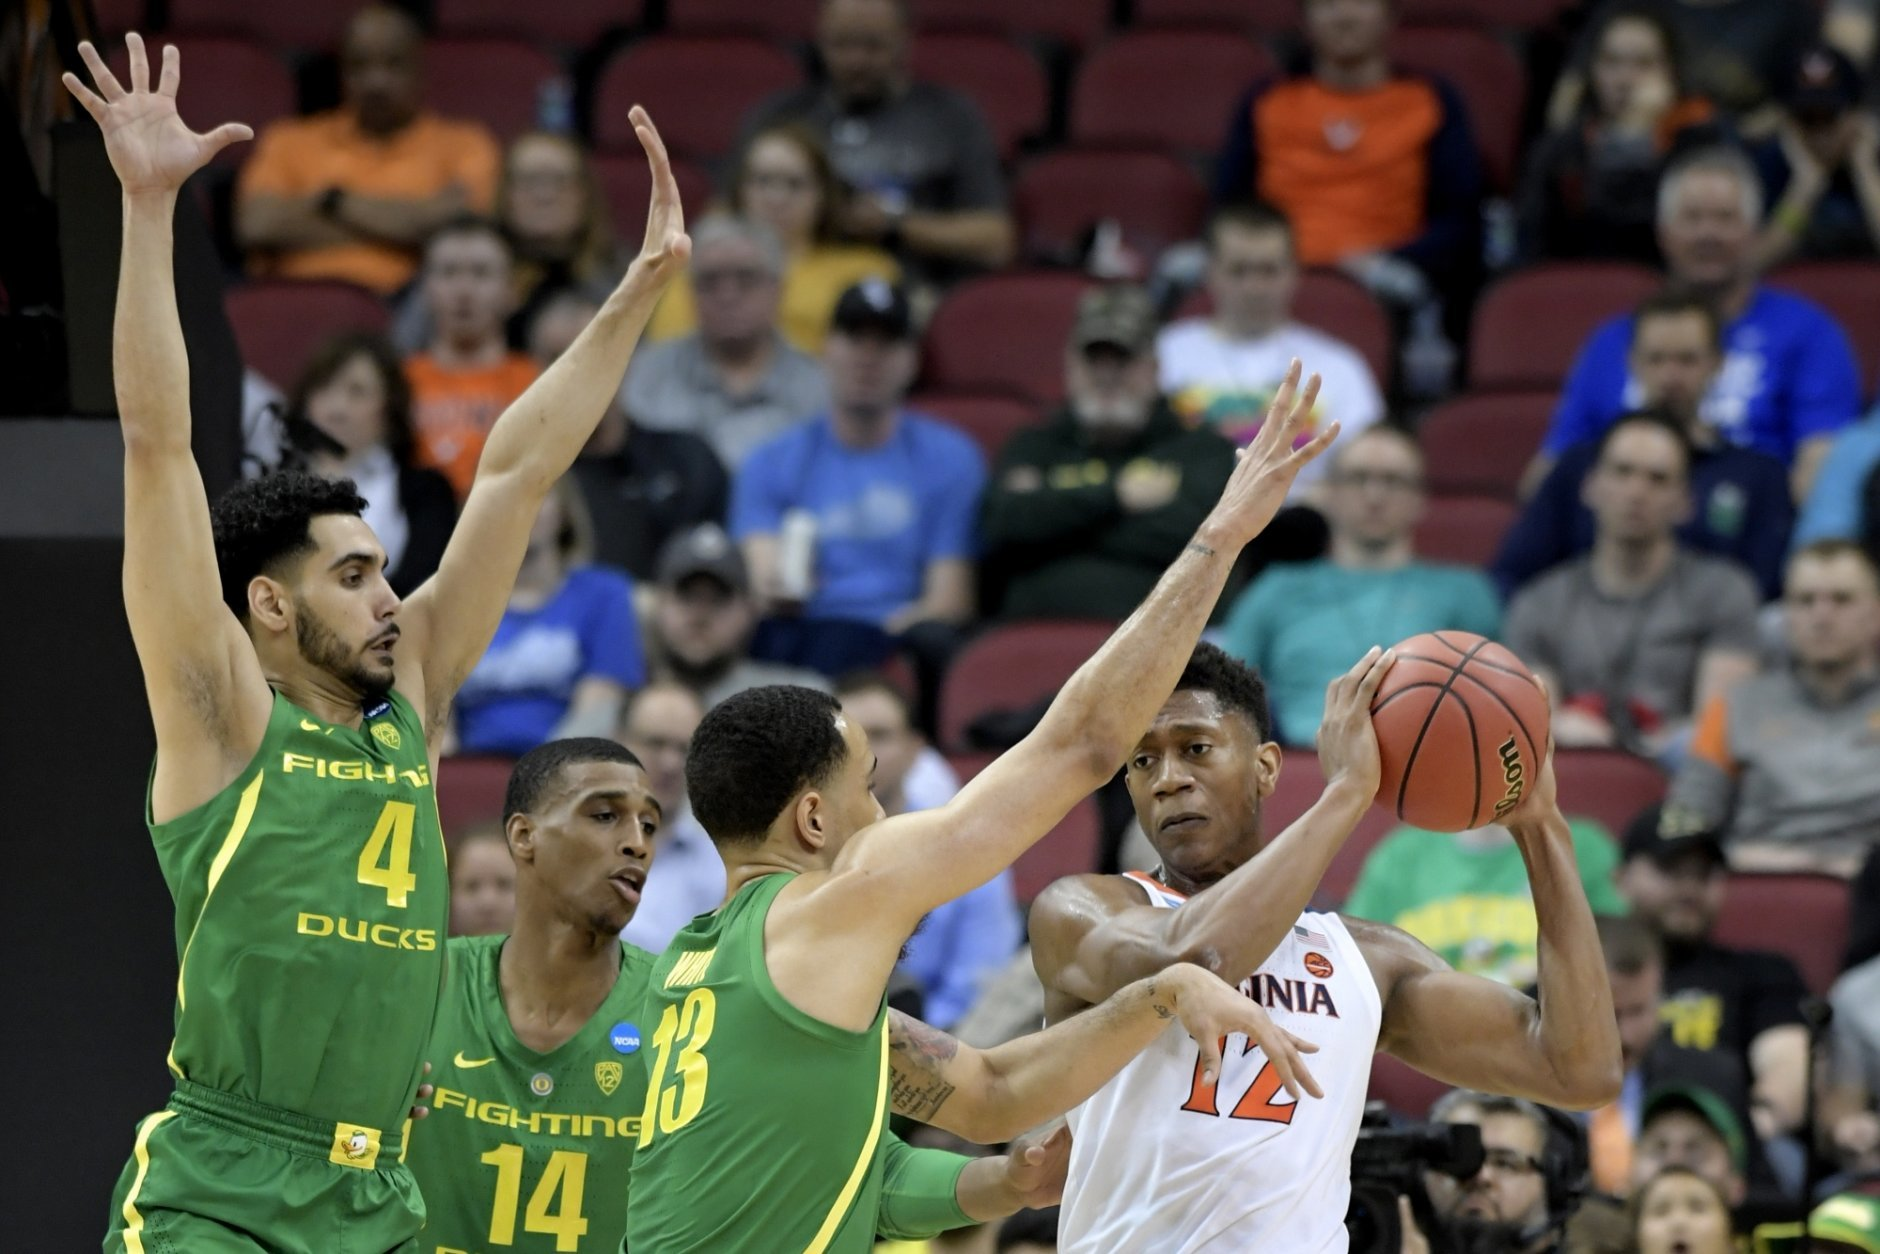 Virginia's De'Andre Hunter (12) is defended by Oregon's Ehab Amin (4), Kenny Wooten (14) and Paul White (13) during the first half of a men's NCAA Tournament college basketball South Regional semifinal game, Thursday, March 28, 2019, in Louisville, Ky. (AP Photo/Timothy D. Easley)